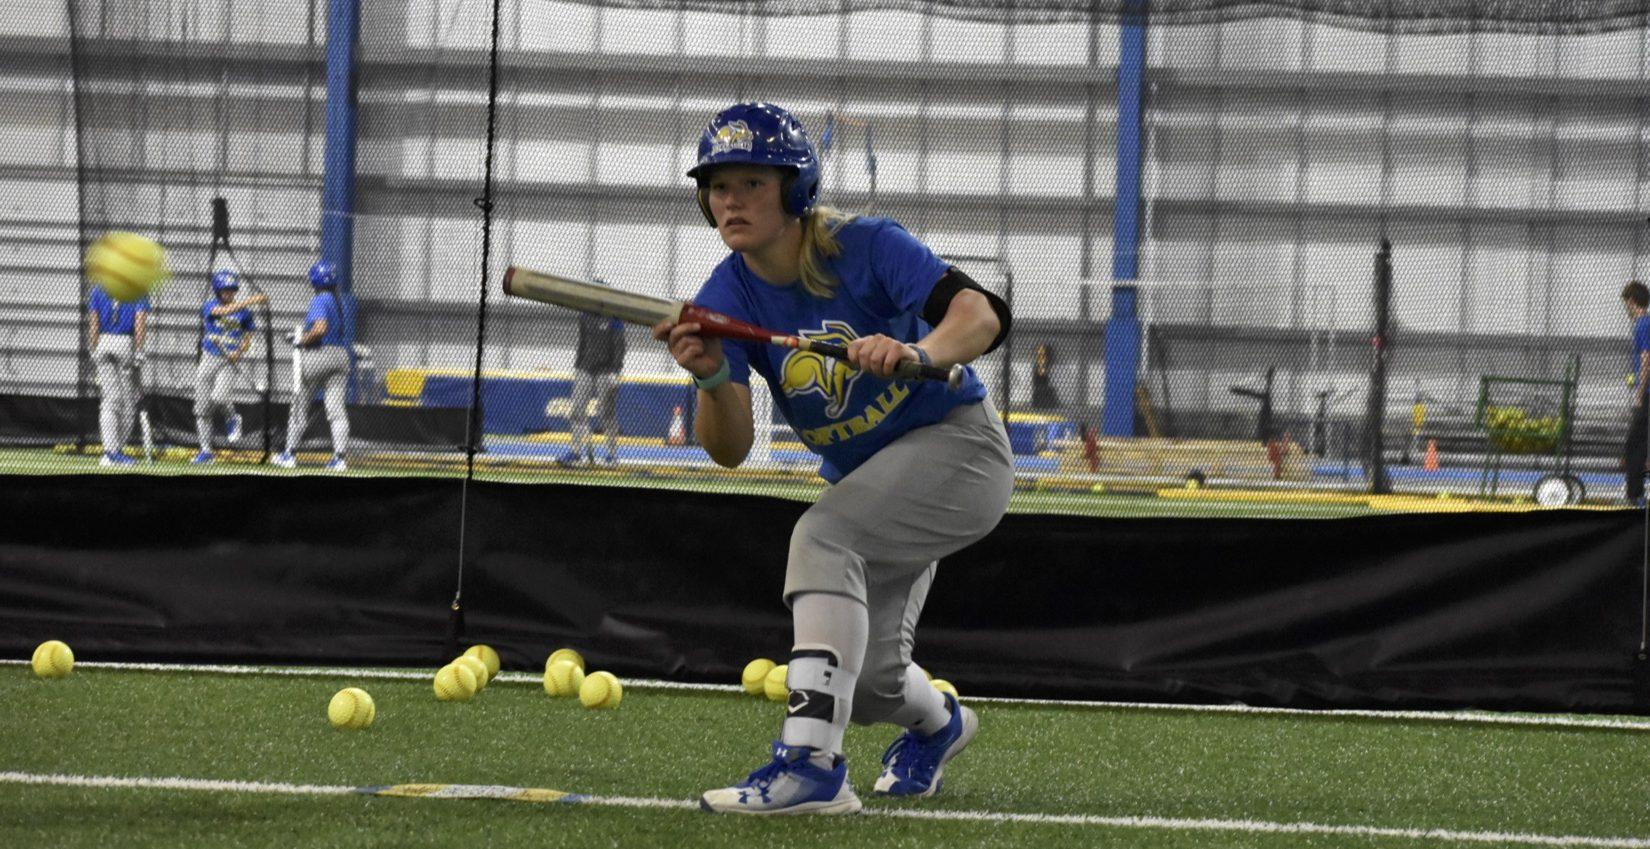 ABBY FULLENKAMP Junior Ali Herdliska readies to bunt the ball during practice April 9 in the SJAC. The Jacks face Western Illinois April 28 and 29 in Macomb, Illinois. SDSU is 27-12 overall and 8-3 in the conference.